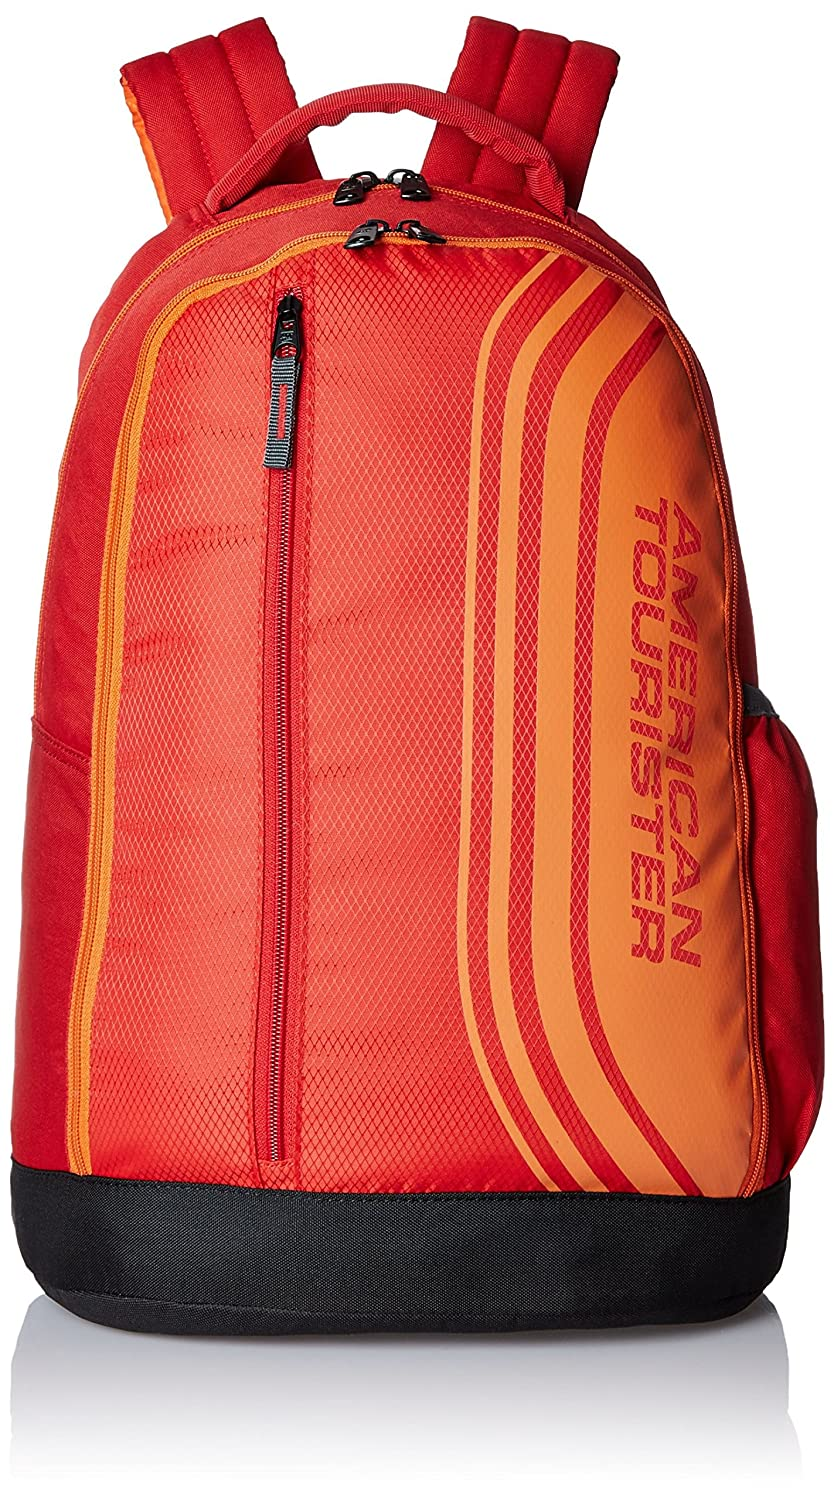 Amazon Lighting Deal – American Tourister 24 Lts Casper Red Casual Backpack low price